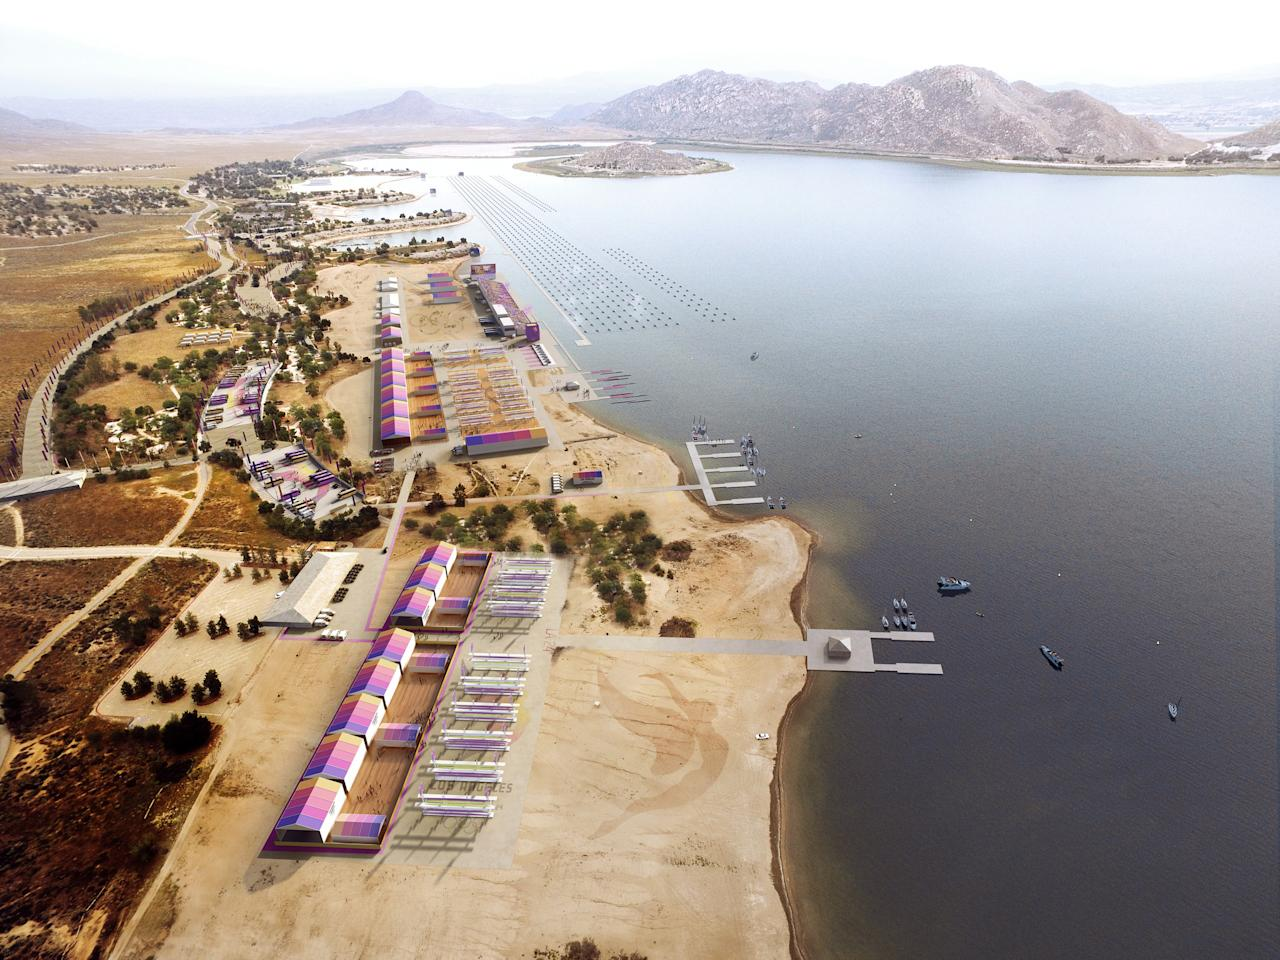 <p>Rowing at Lake Perris. (Photo courtesy of LA2024) </p>